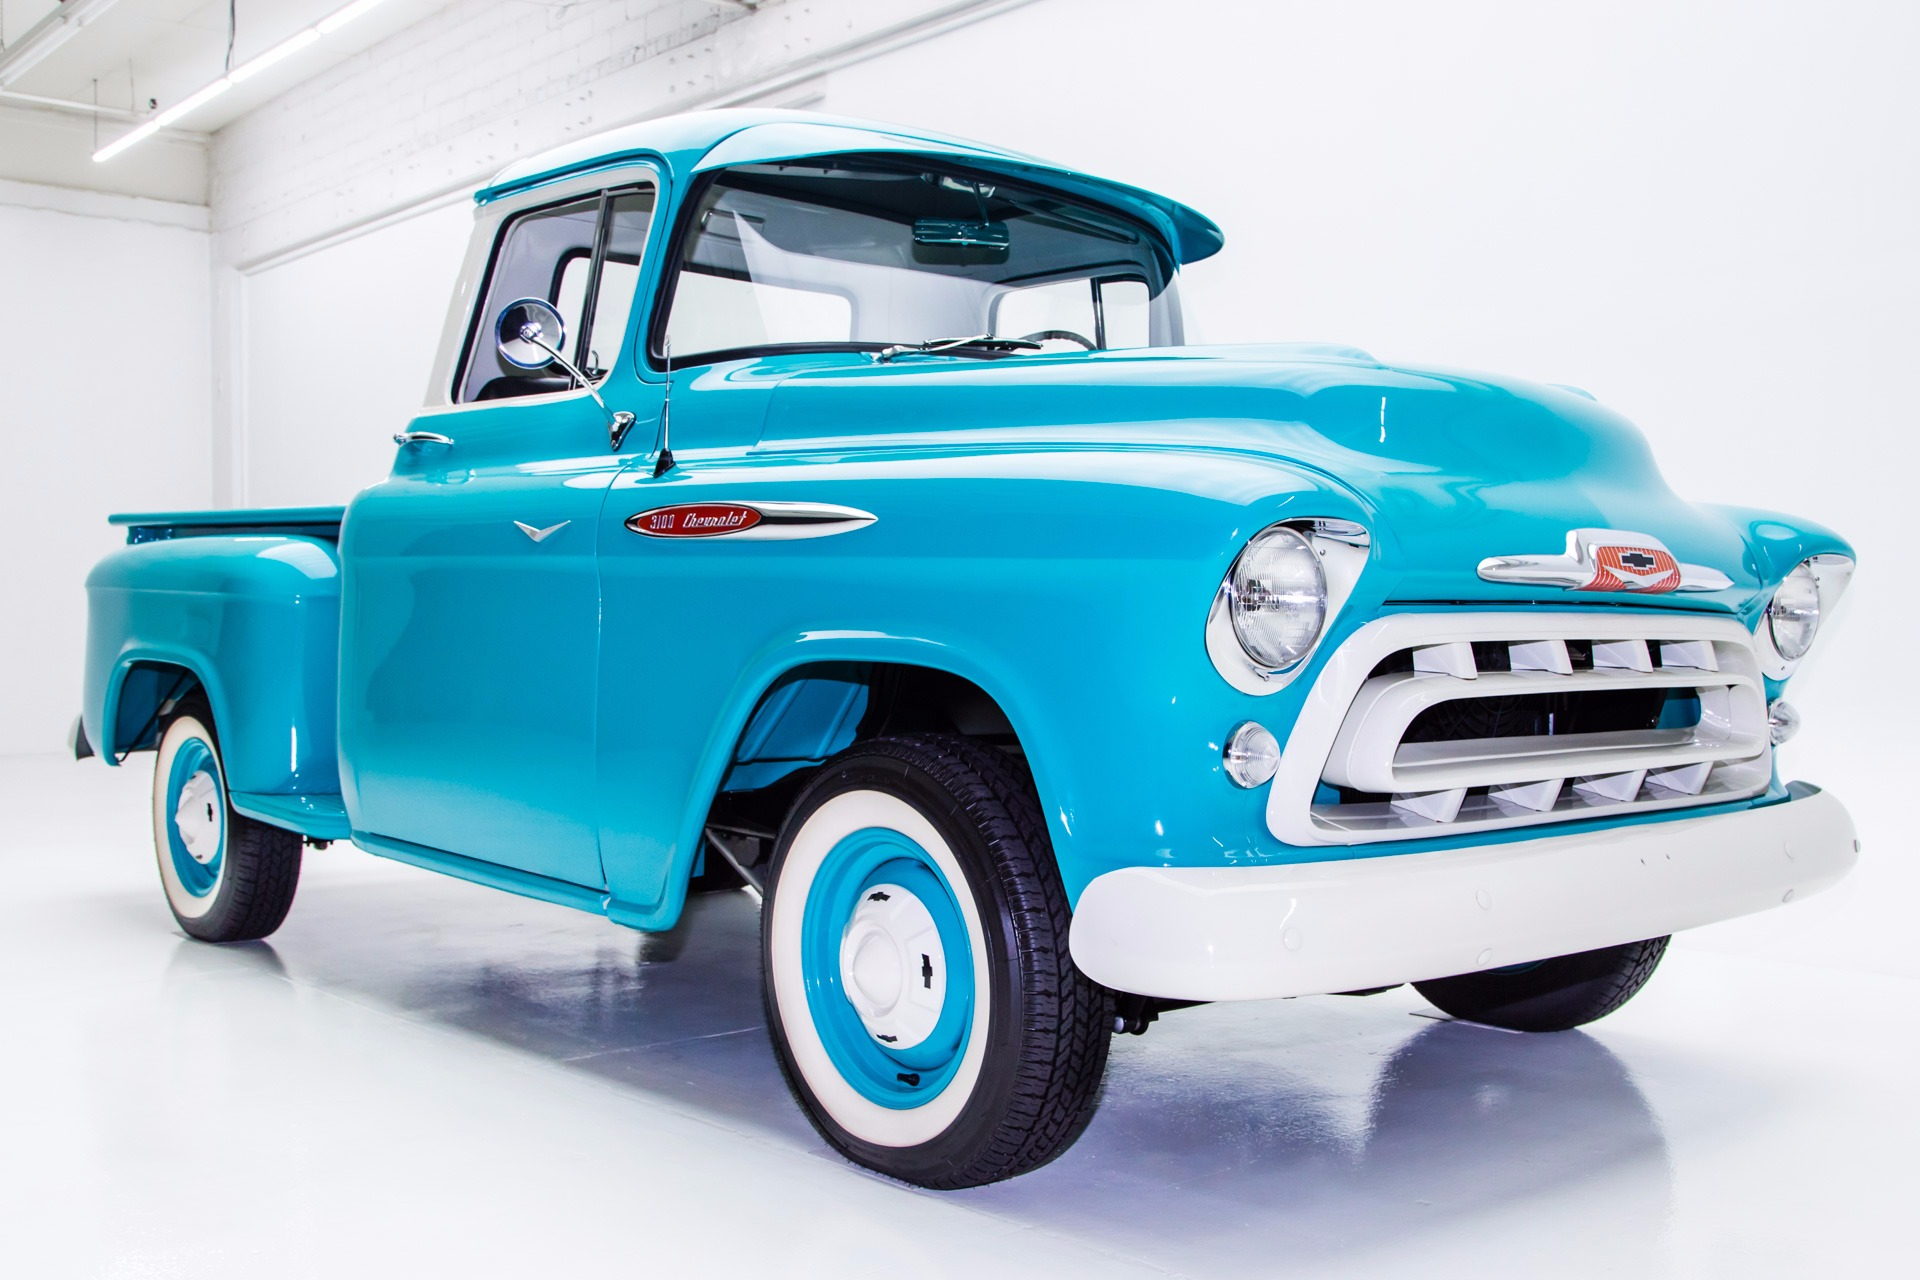 1957 Chevrolet Pickup Extensive Resto 383 425 Ac Chevy Truck Paint Colors